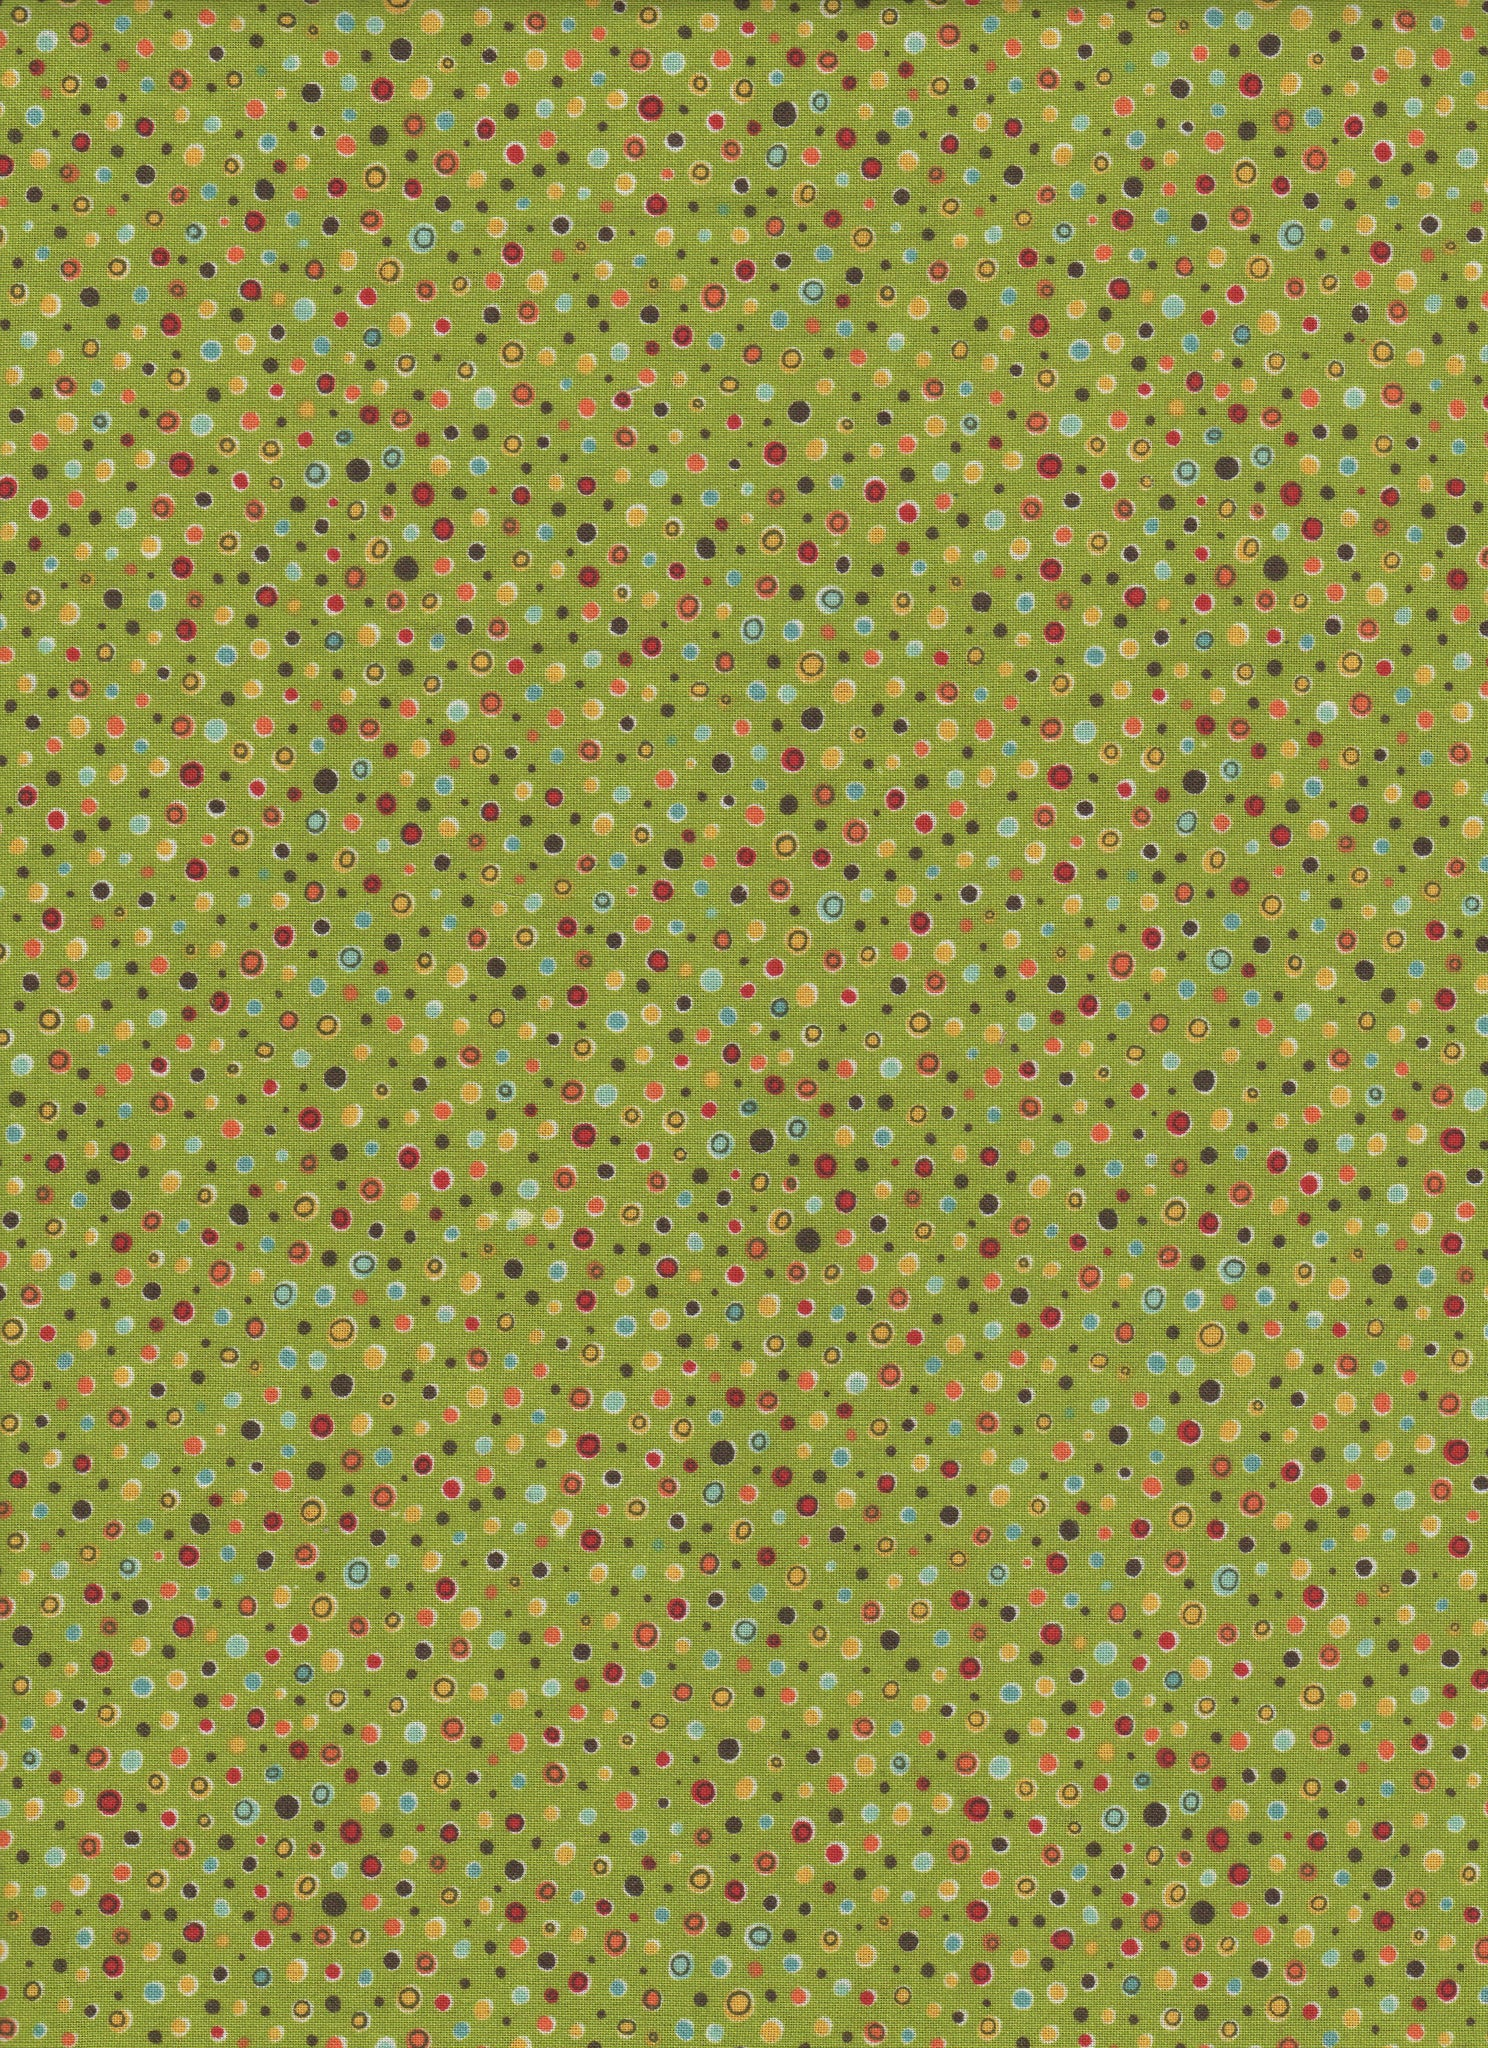 Multicolor Dots on Green Background - Fat Quarter